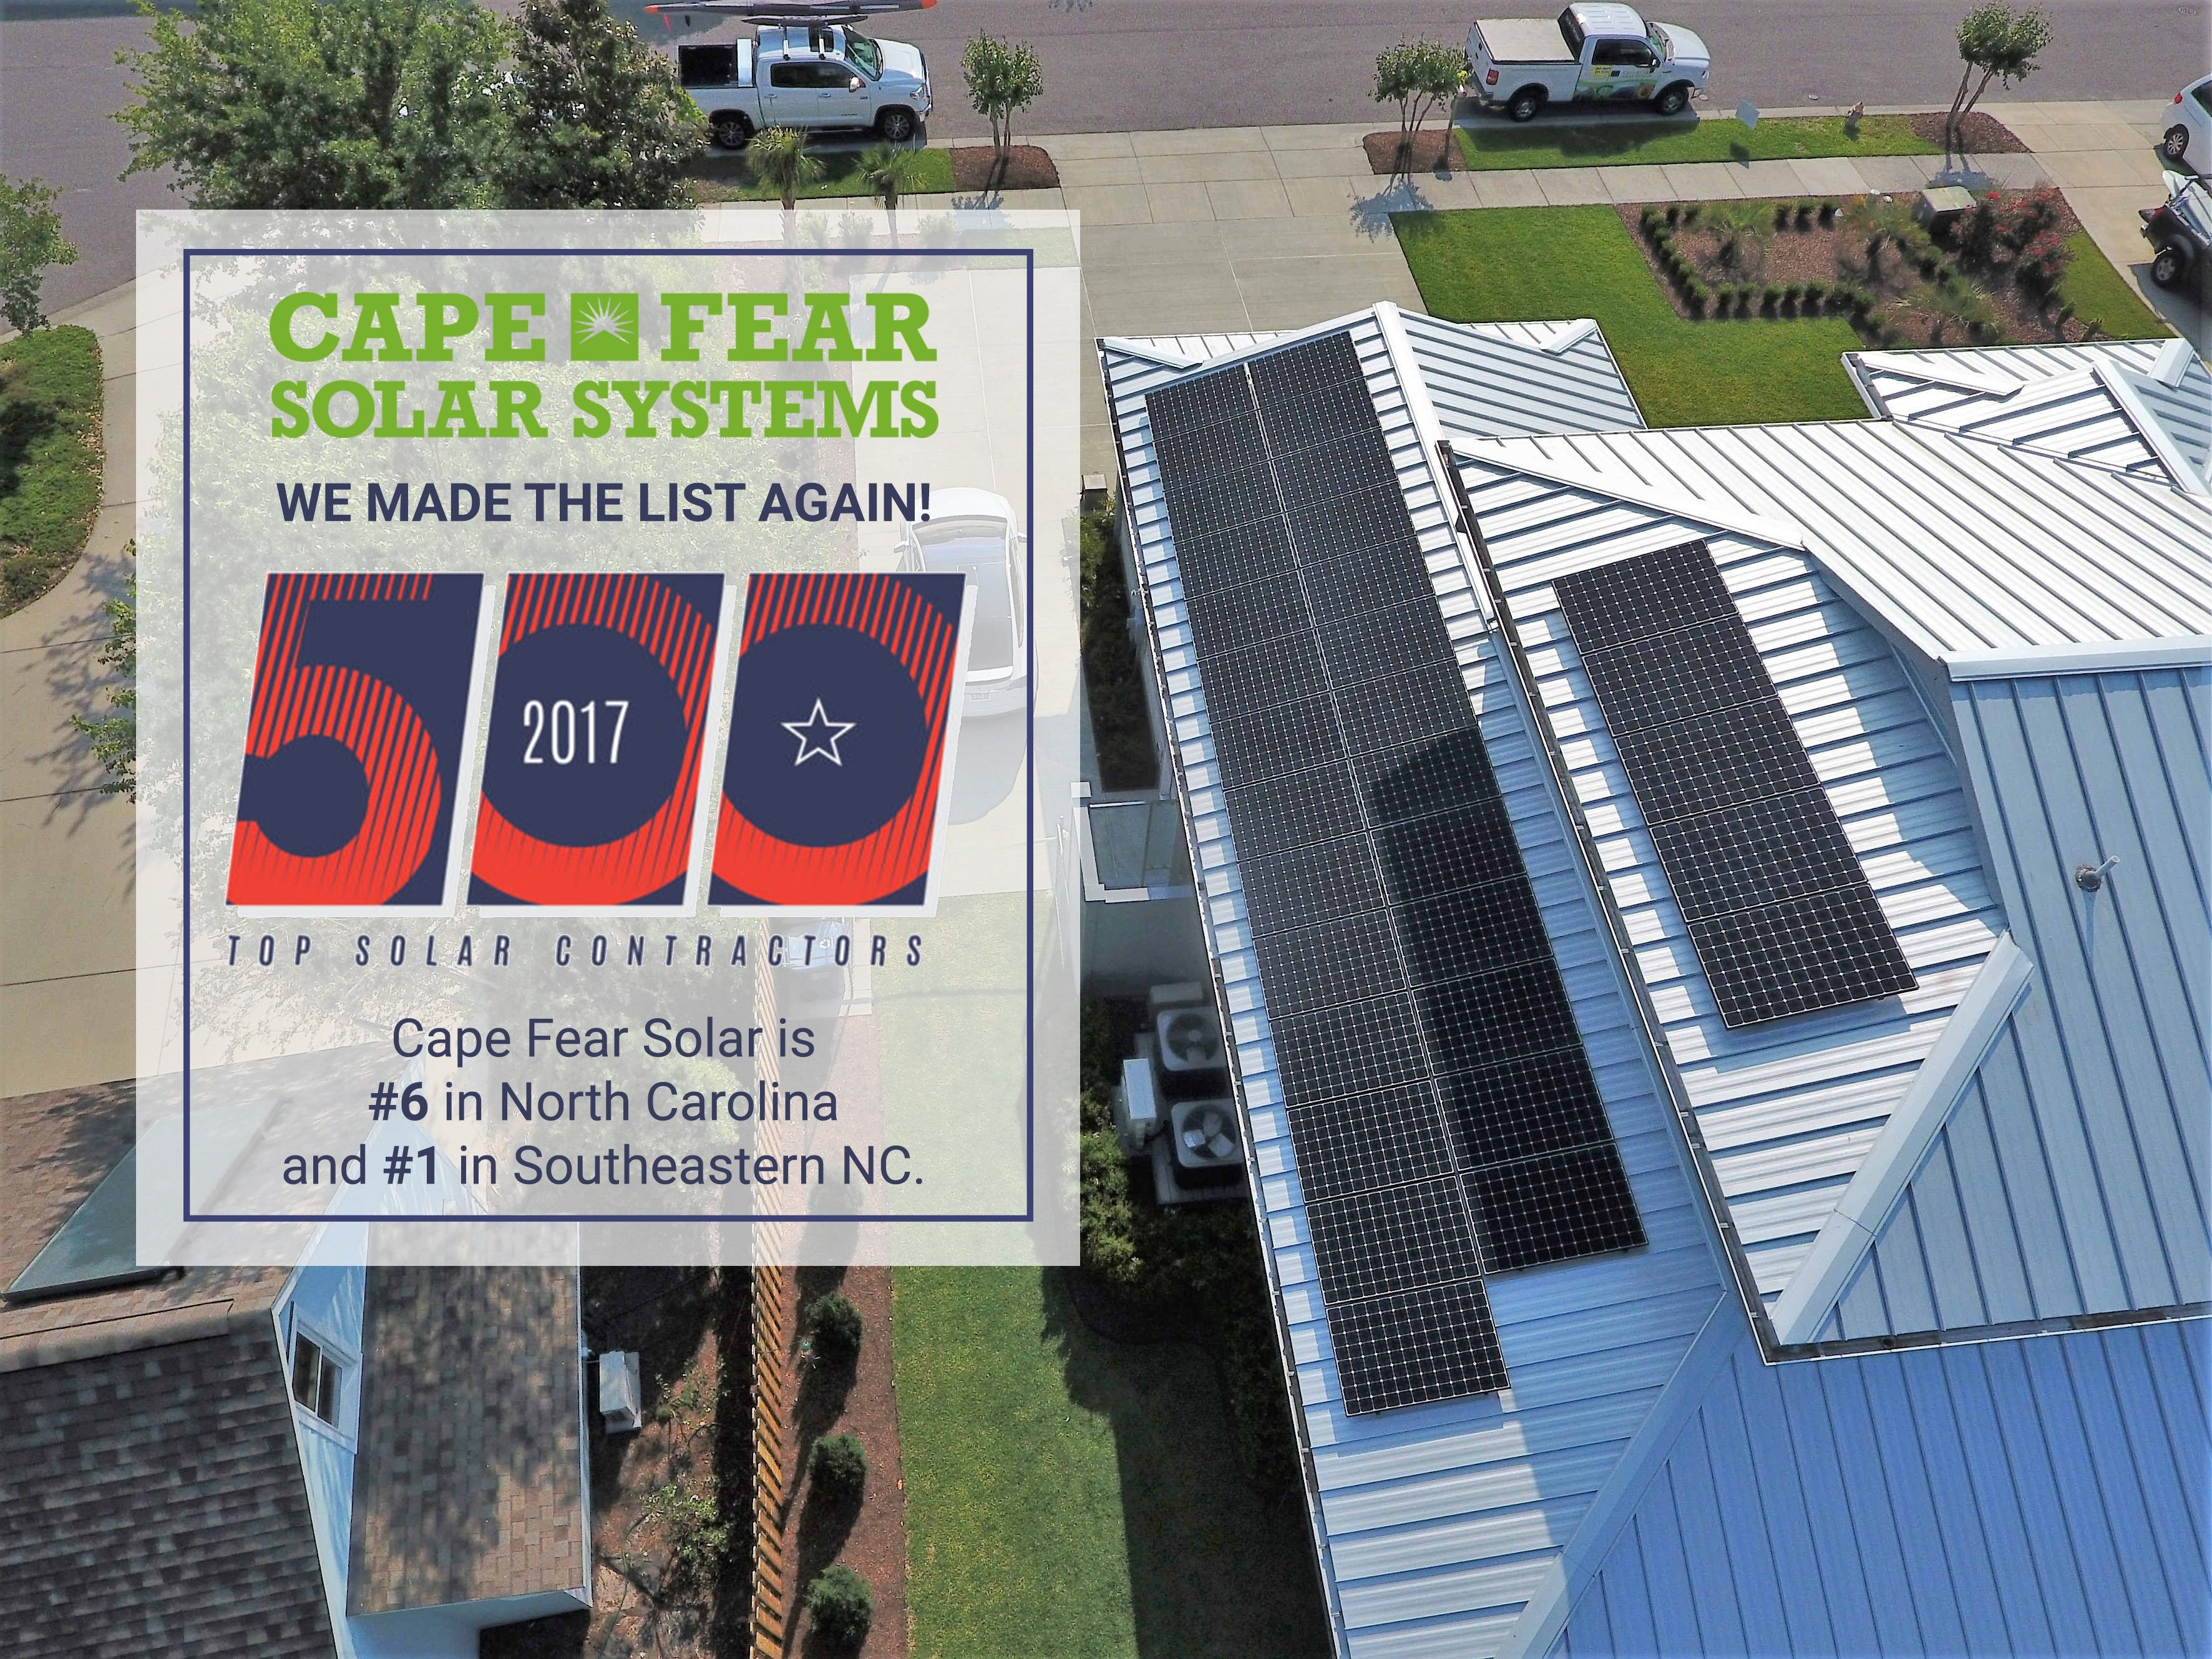 Cape Fear Solar Systems Recognized As Top Solar Contractor With Images Solar Solar News Solar System